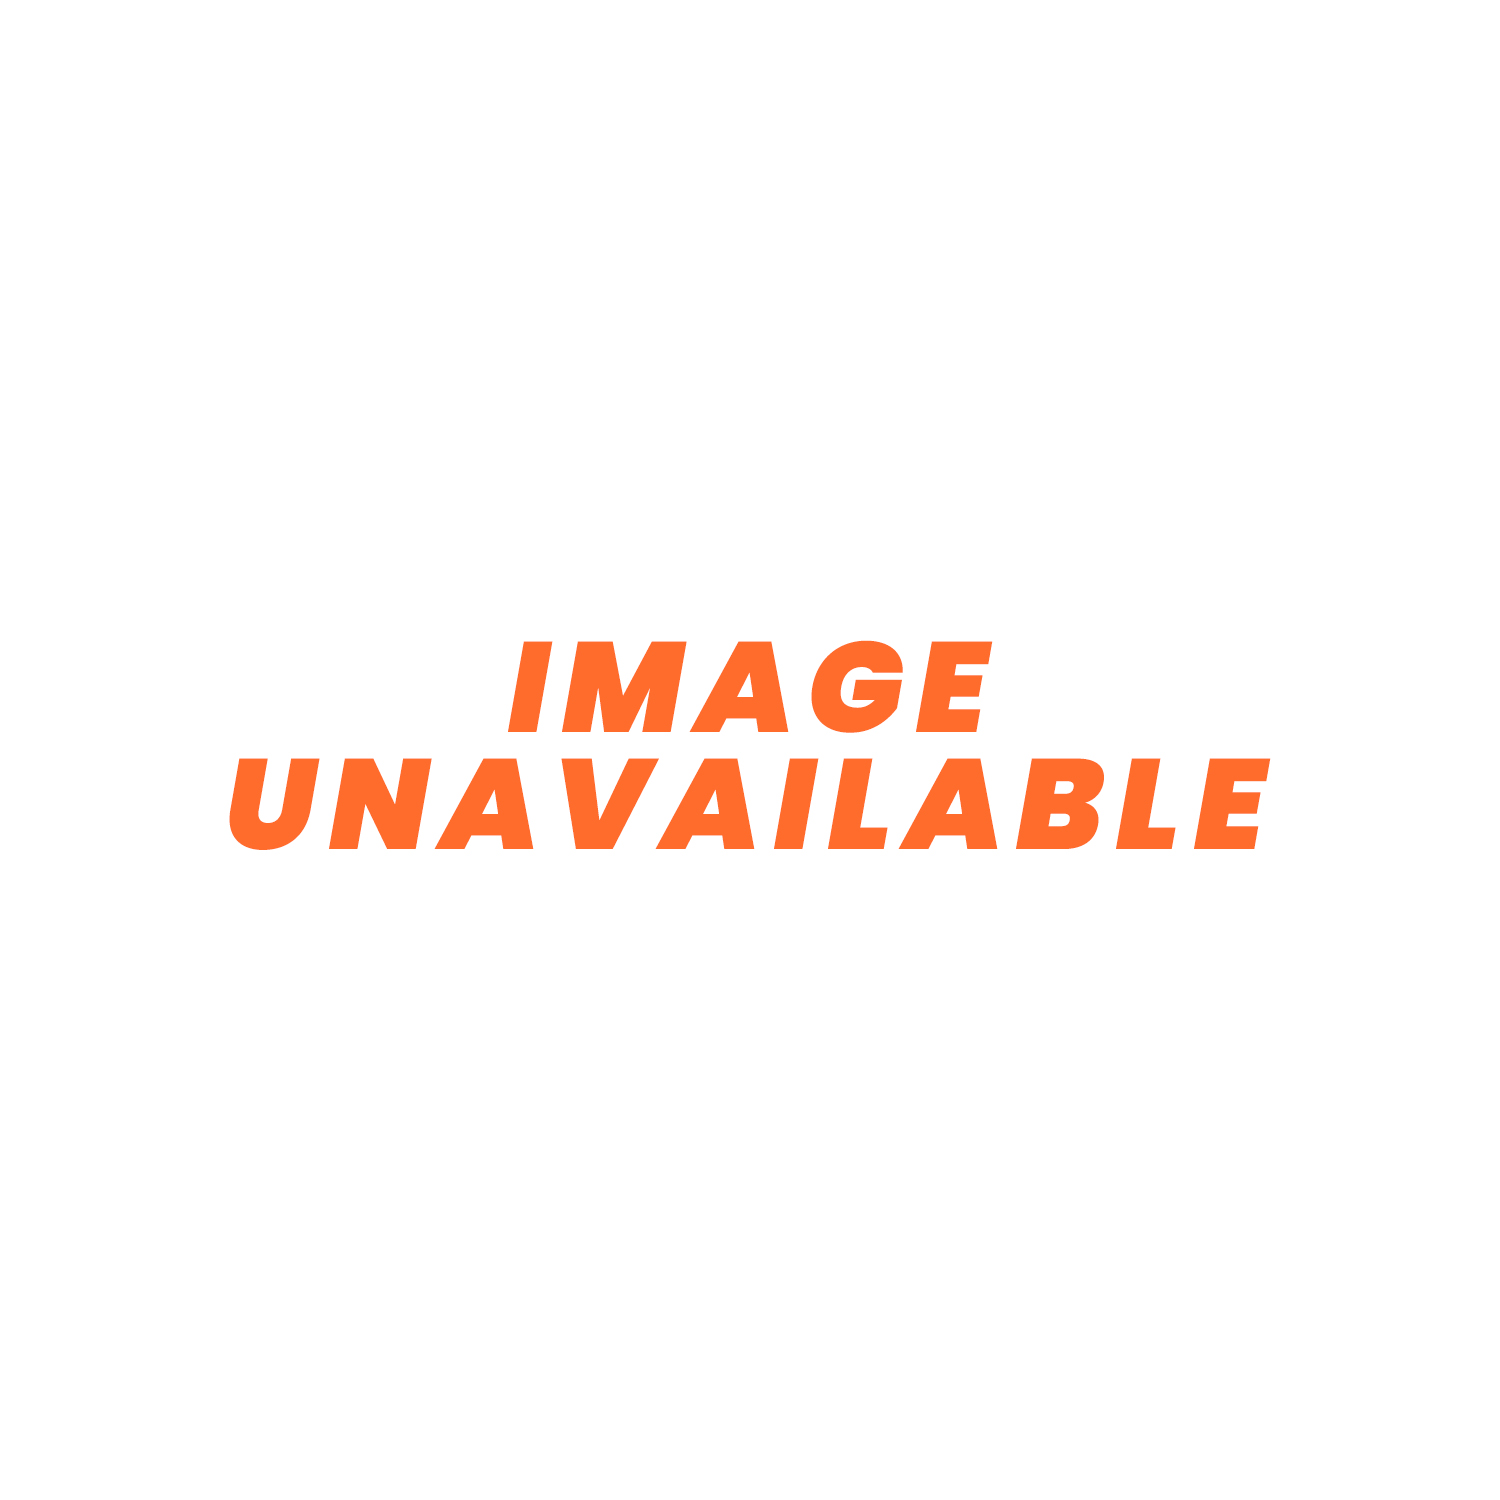 "SPAL Radiator Fan - 10.0"" (255mm) Push VA11-AP7/C-57S 844cfm"